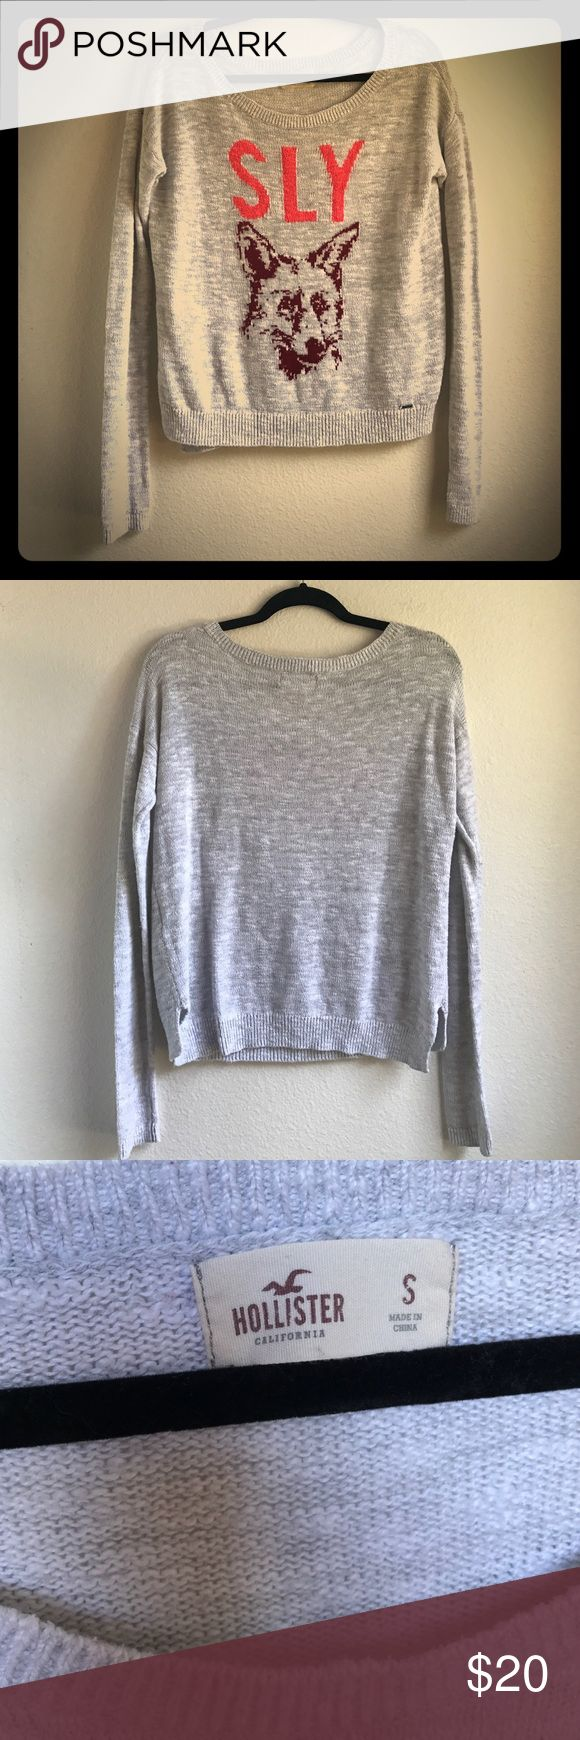 """""""Sly Fox"""" Sweater by Hollister Co. Be extra cute, cozy, & clever, you sly fox you! In a lovely light side of gray with the font """"sly"""" in a shade of orange and the image of a fox.  Great for layer with your favorite bralettes, tanks, and accessories. 💁✨Women's Size SMALL. In EXCELLENT condition. Open to only reasonable offers for single purchase items. Hollister Sweaters"""